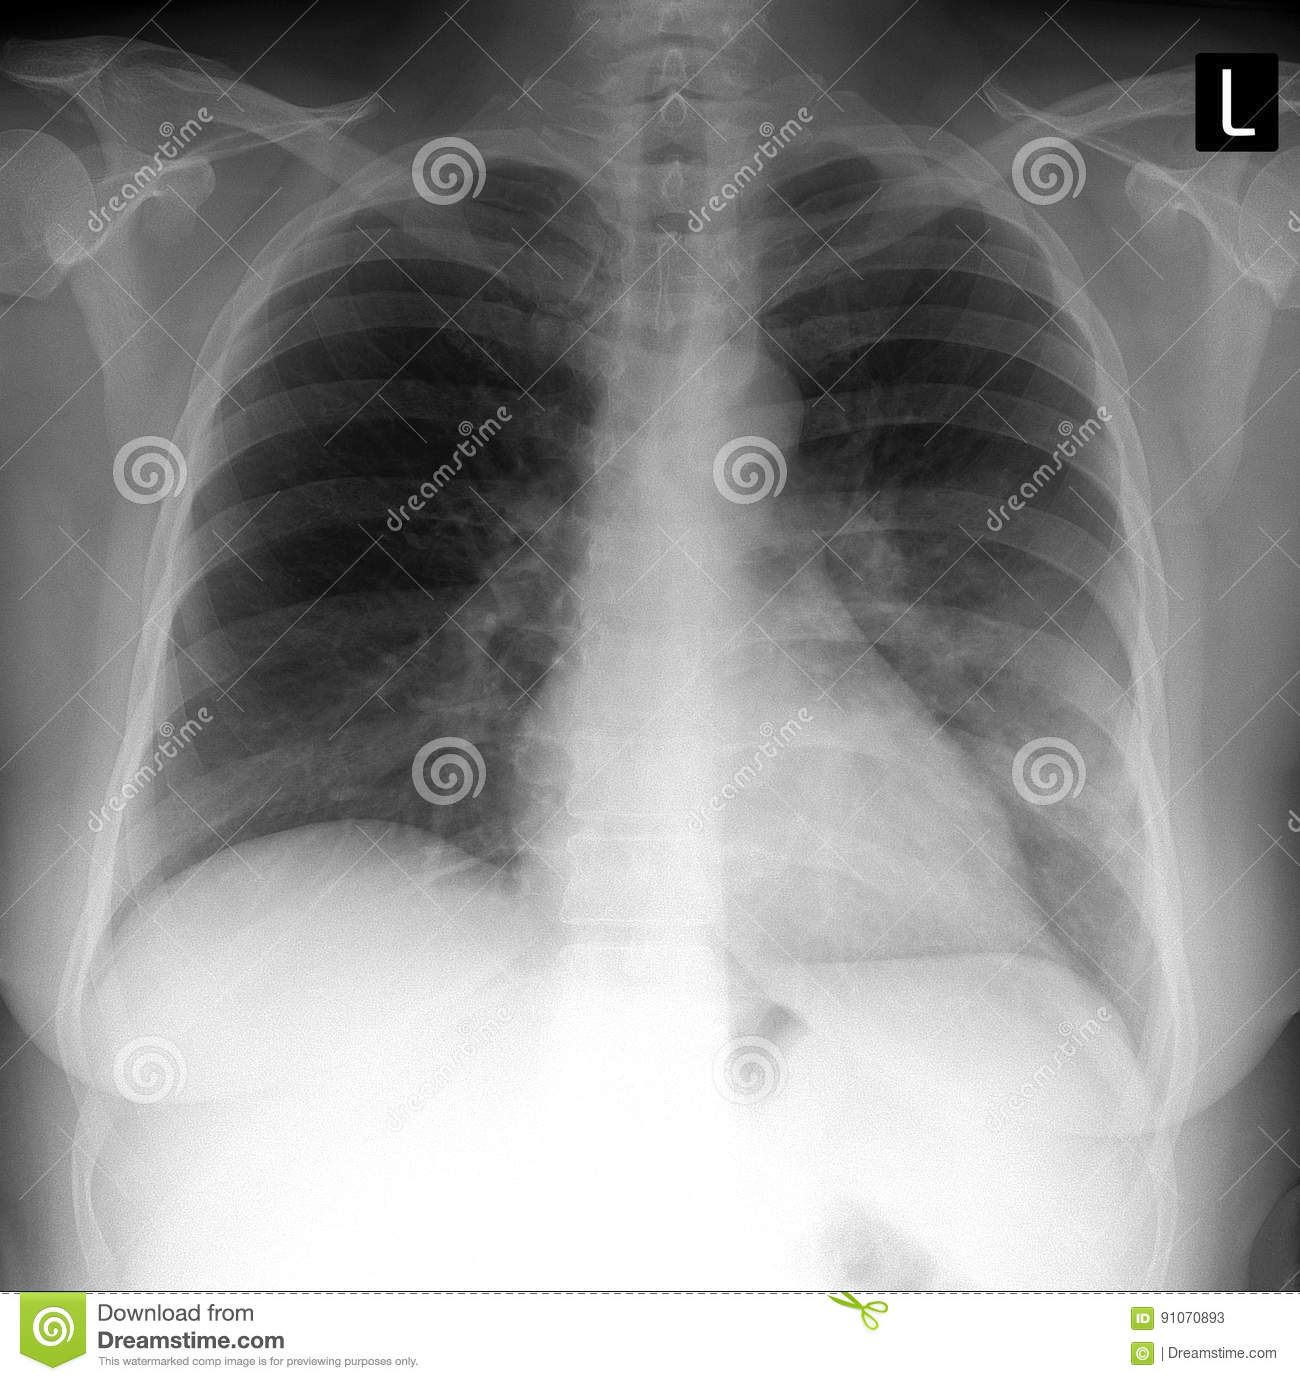 X-ray Lung. Showing A Large Infiltrate In The Left Lung